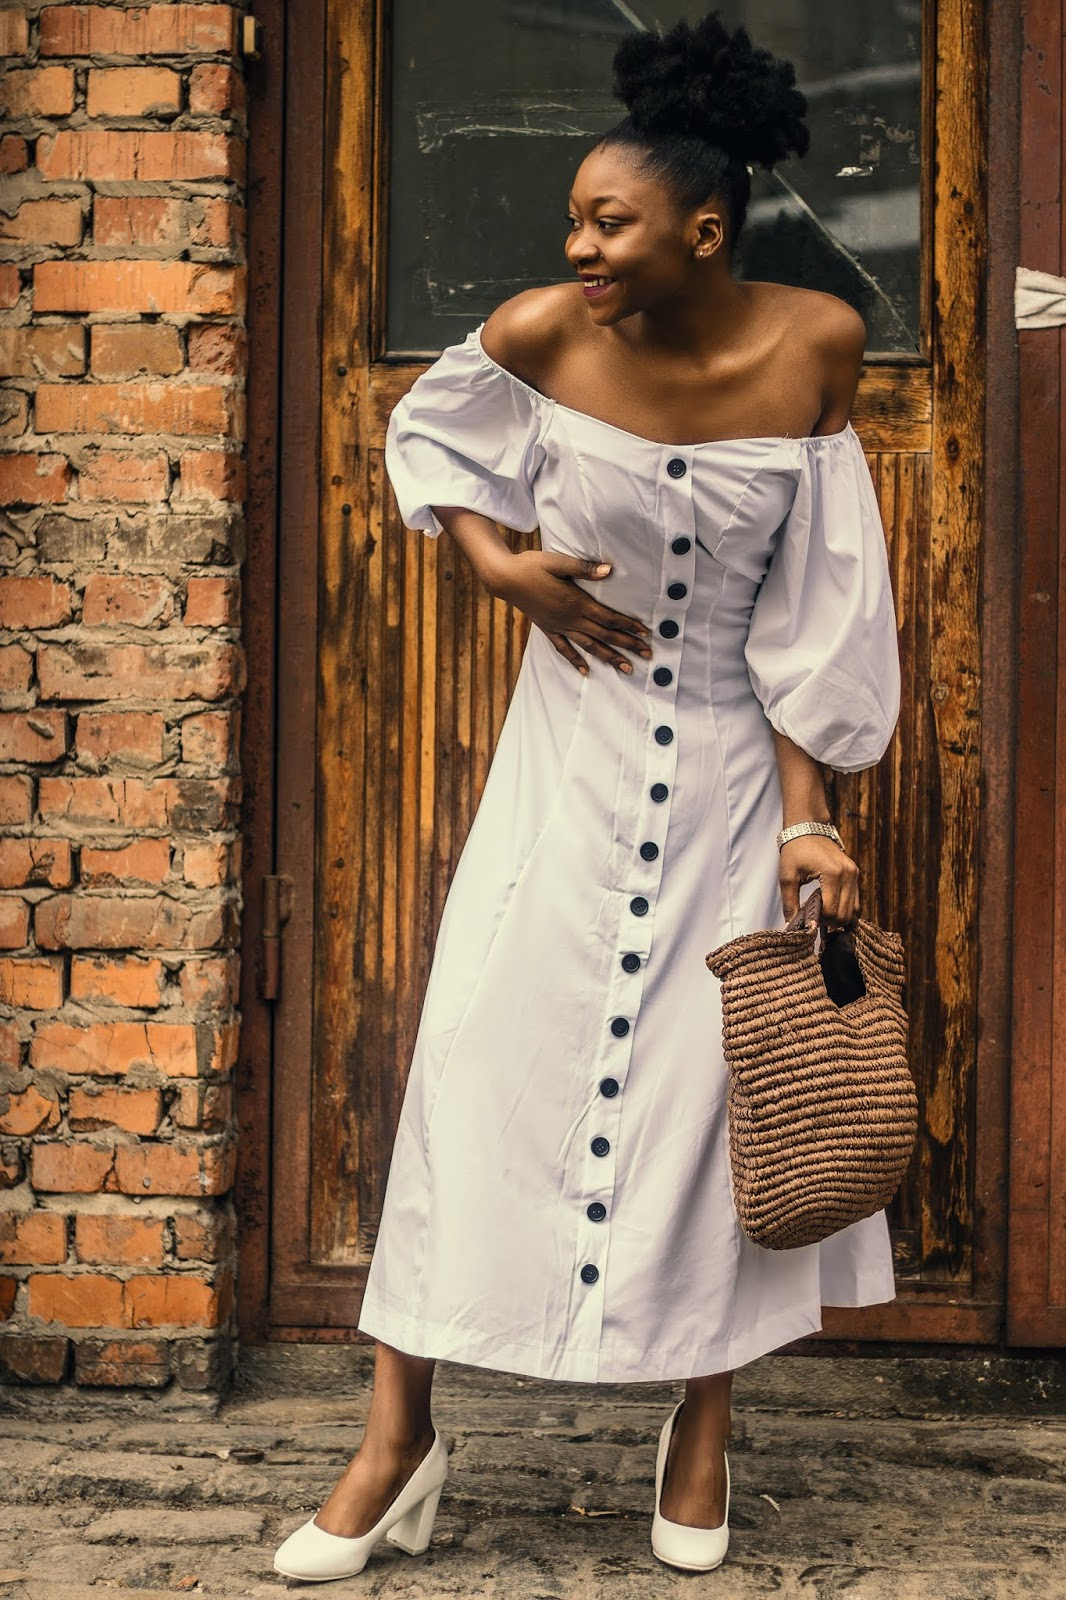 3adfab94702 You can purchase this cheap White Off Shoulder Puff Sleeve Button Down  Front Plain Midi Dress. It features a flowy A-line flare skirt and a button  front ...